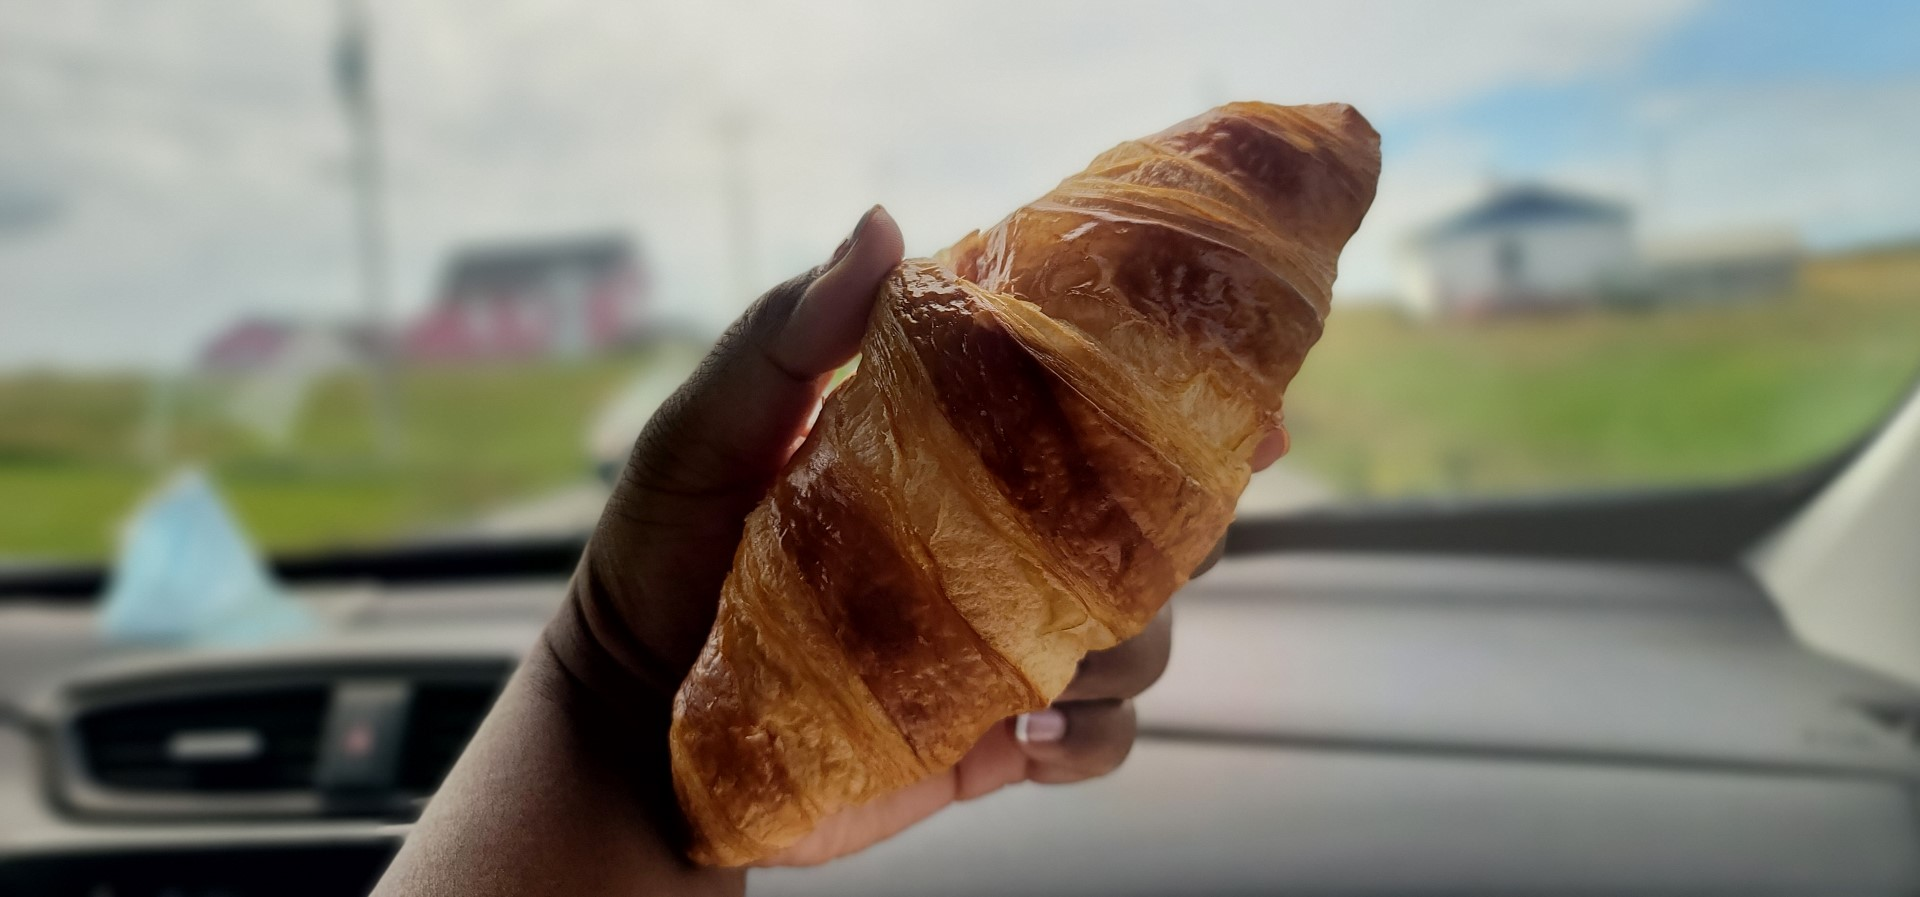 brown hand holding a croissant in front of window